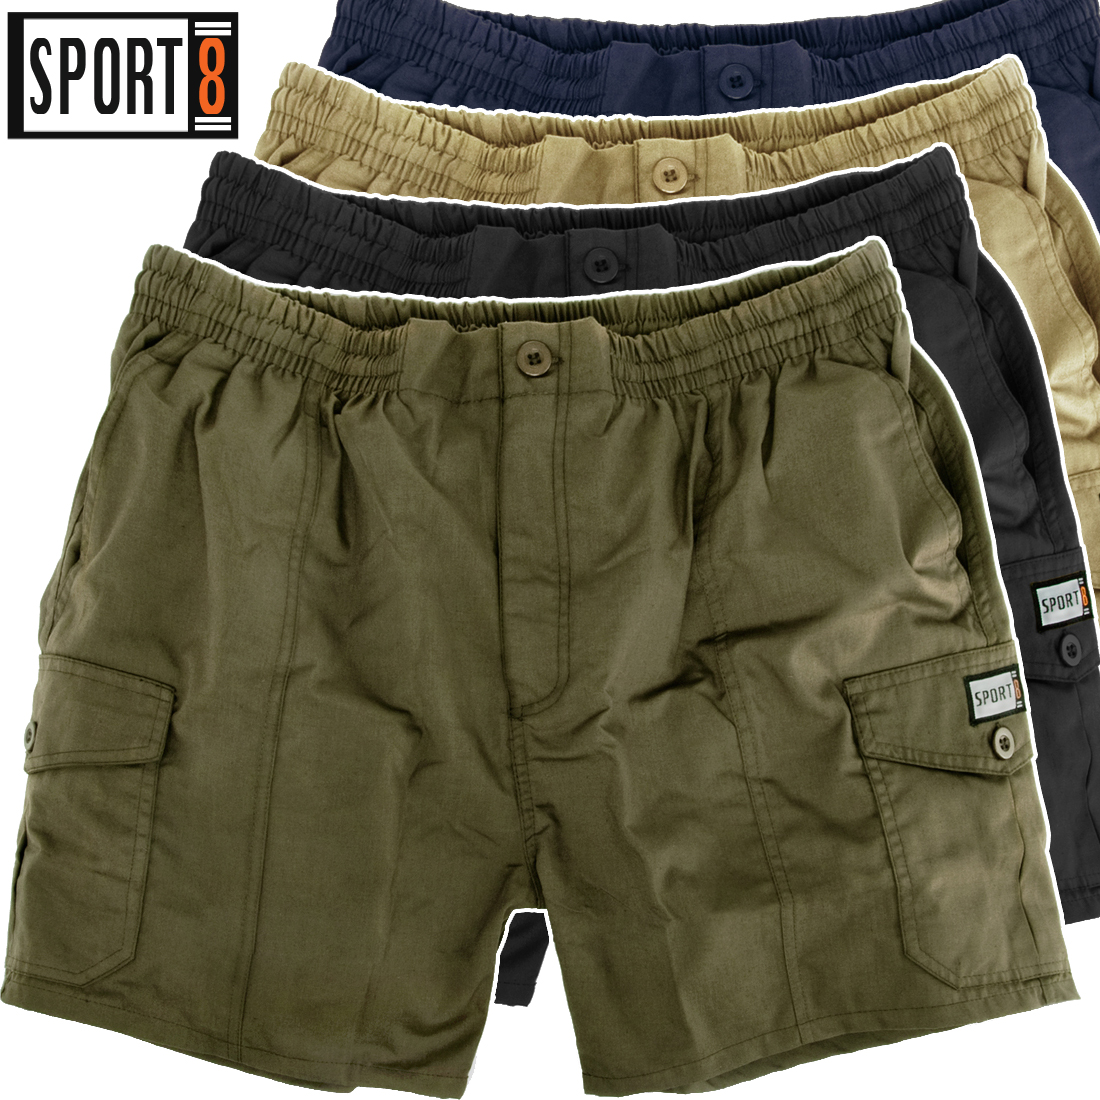 herren shorts cargo shorts kurze hose elastischer bund. Black Bedroom Furniture Sets. Home Design Ideas